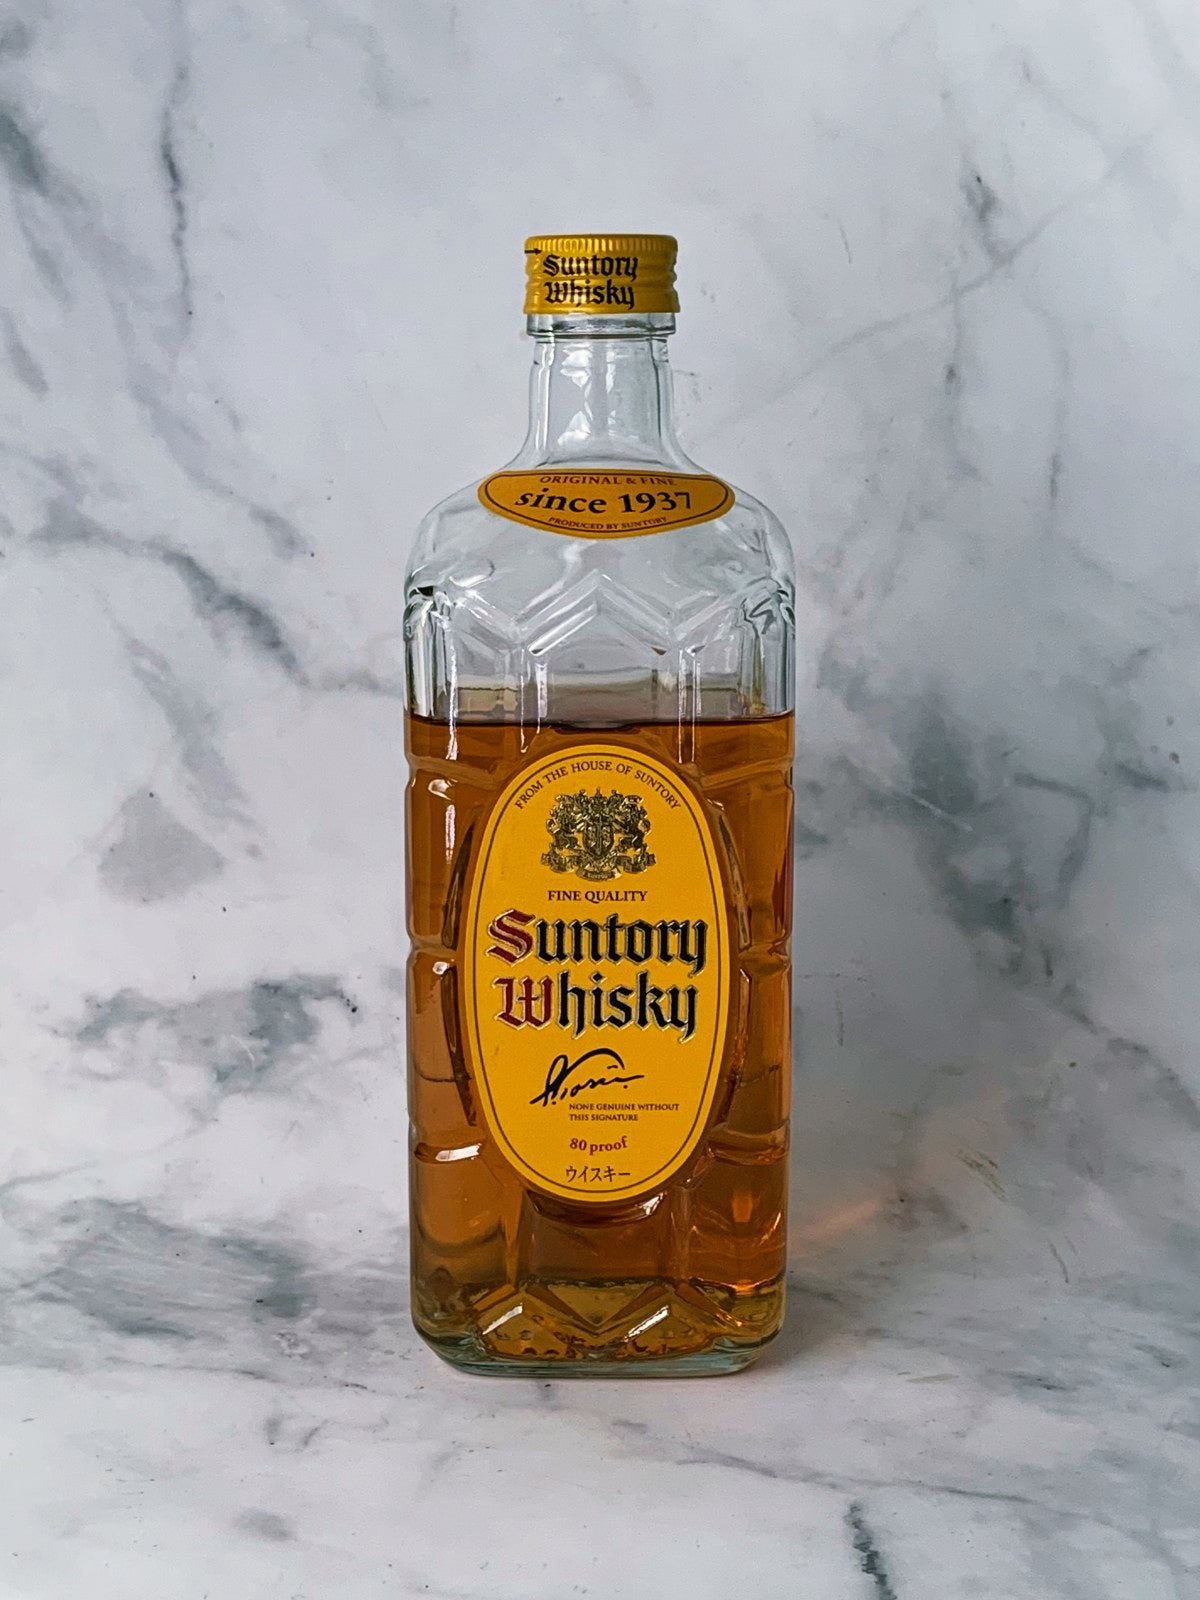 Suntory Kakubin Whisky 80m Proof (50ml serve)